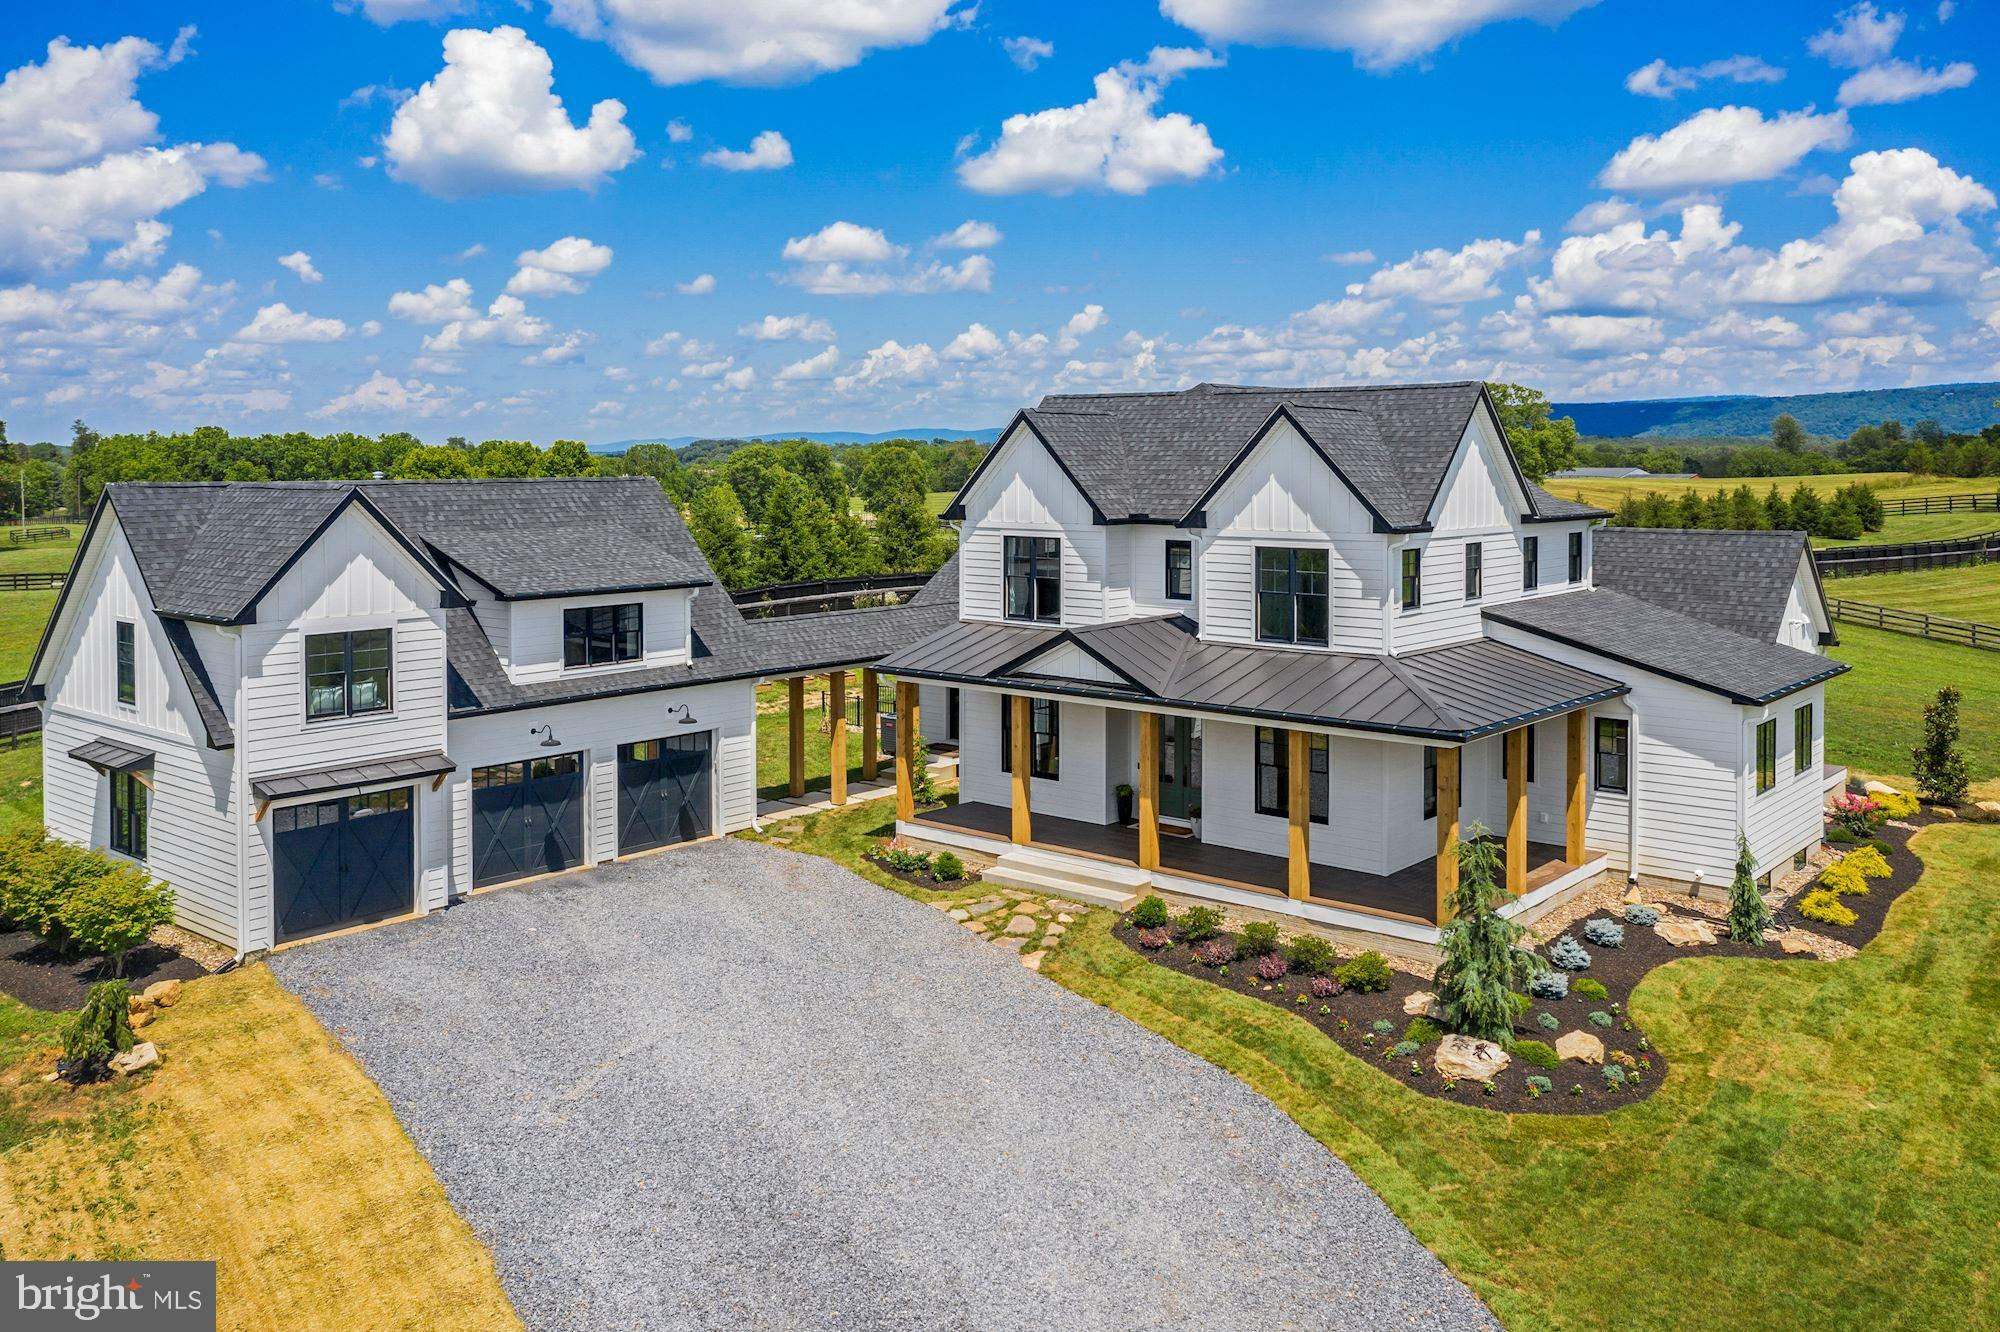 Built in 2019, this luxurious modern farmhouse situated on 10+ peaceful acres offers 6,110+/- square